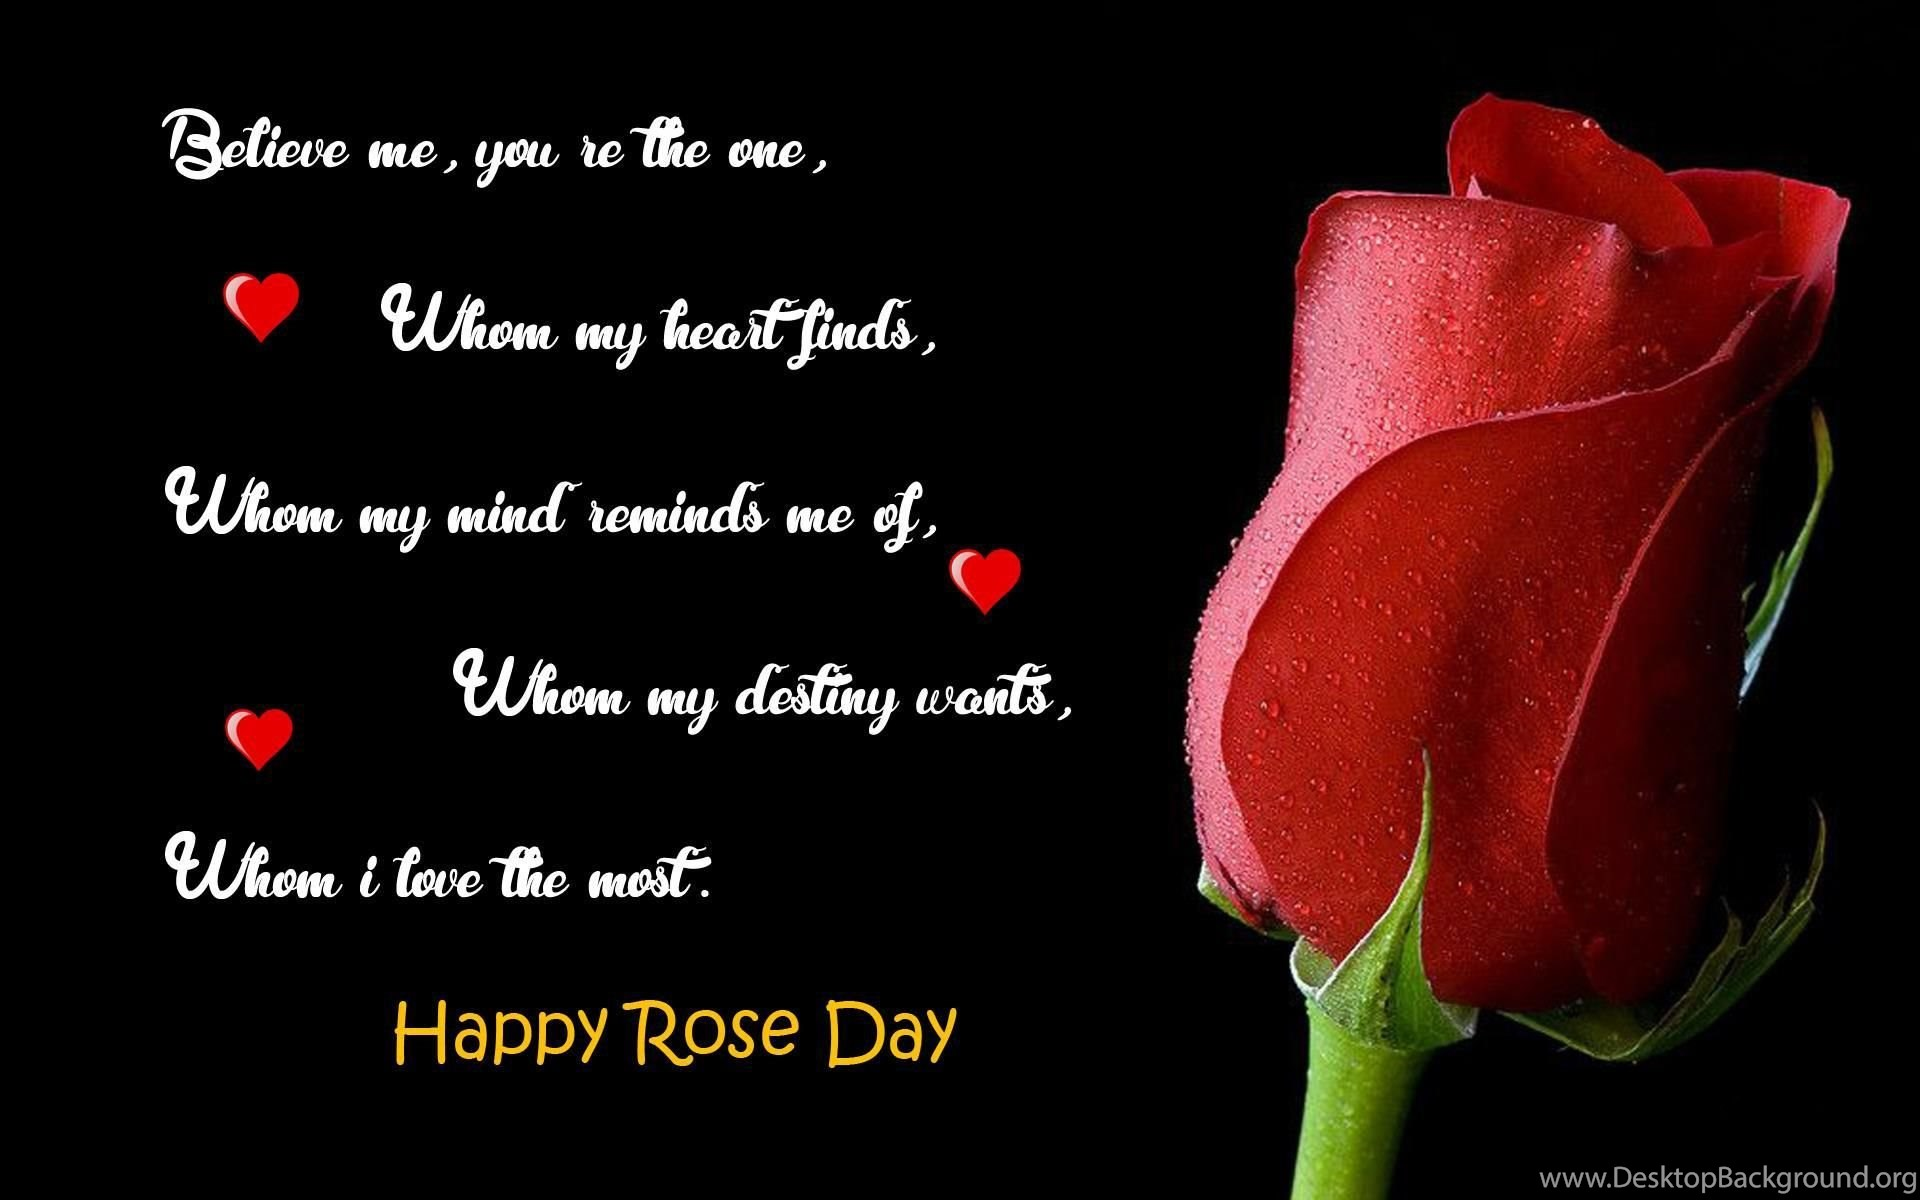 Happy Rose Day 2016 Images With Quotes Hd Download Best Whatsapp